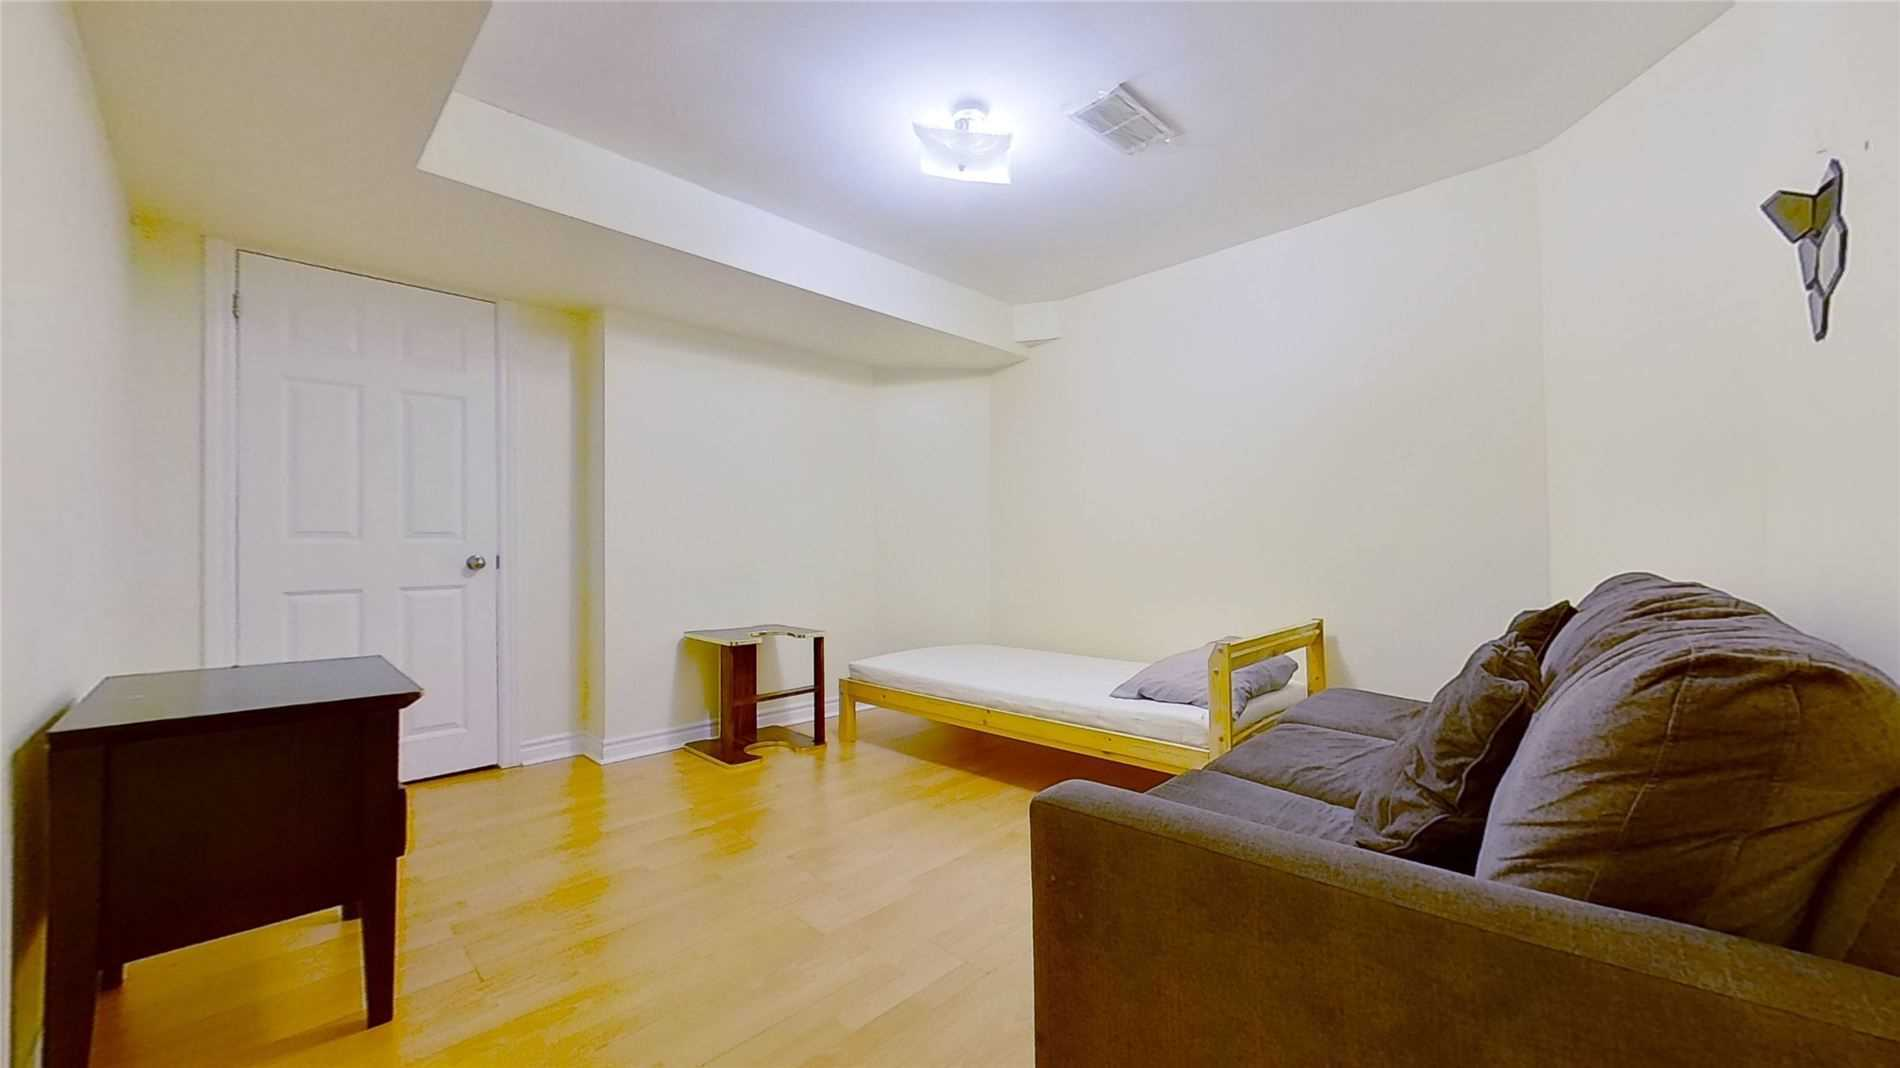 Image 3 of 16 showing inside of 2 Bedroom Detached 2-Storey for Lease at 5 Whalen Crt, Richmond Hill L4C9T5